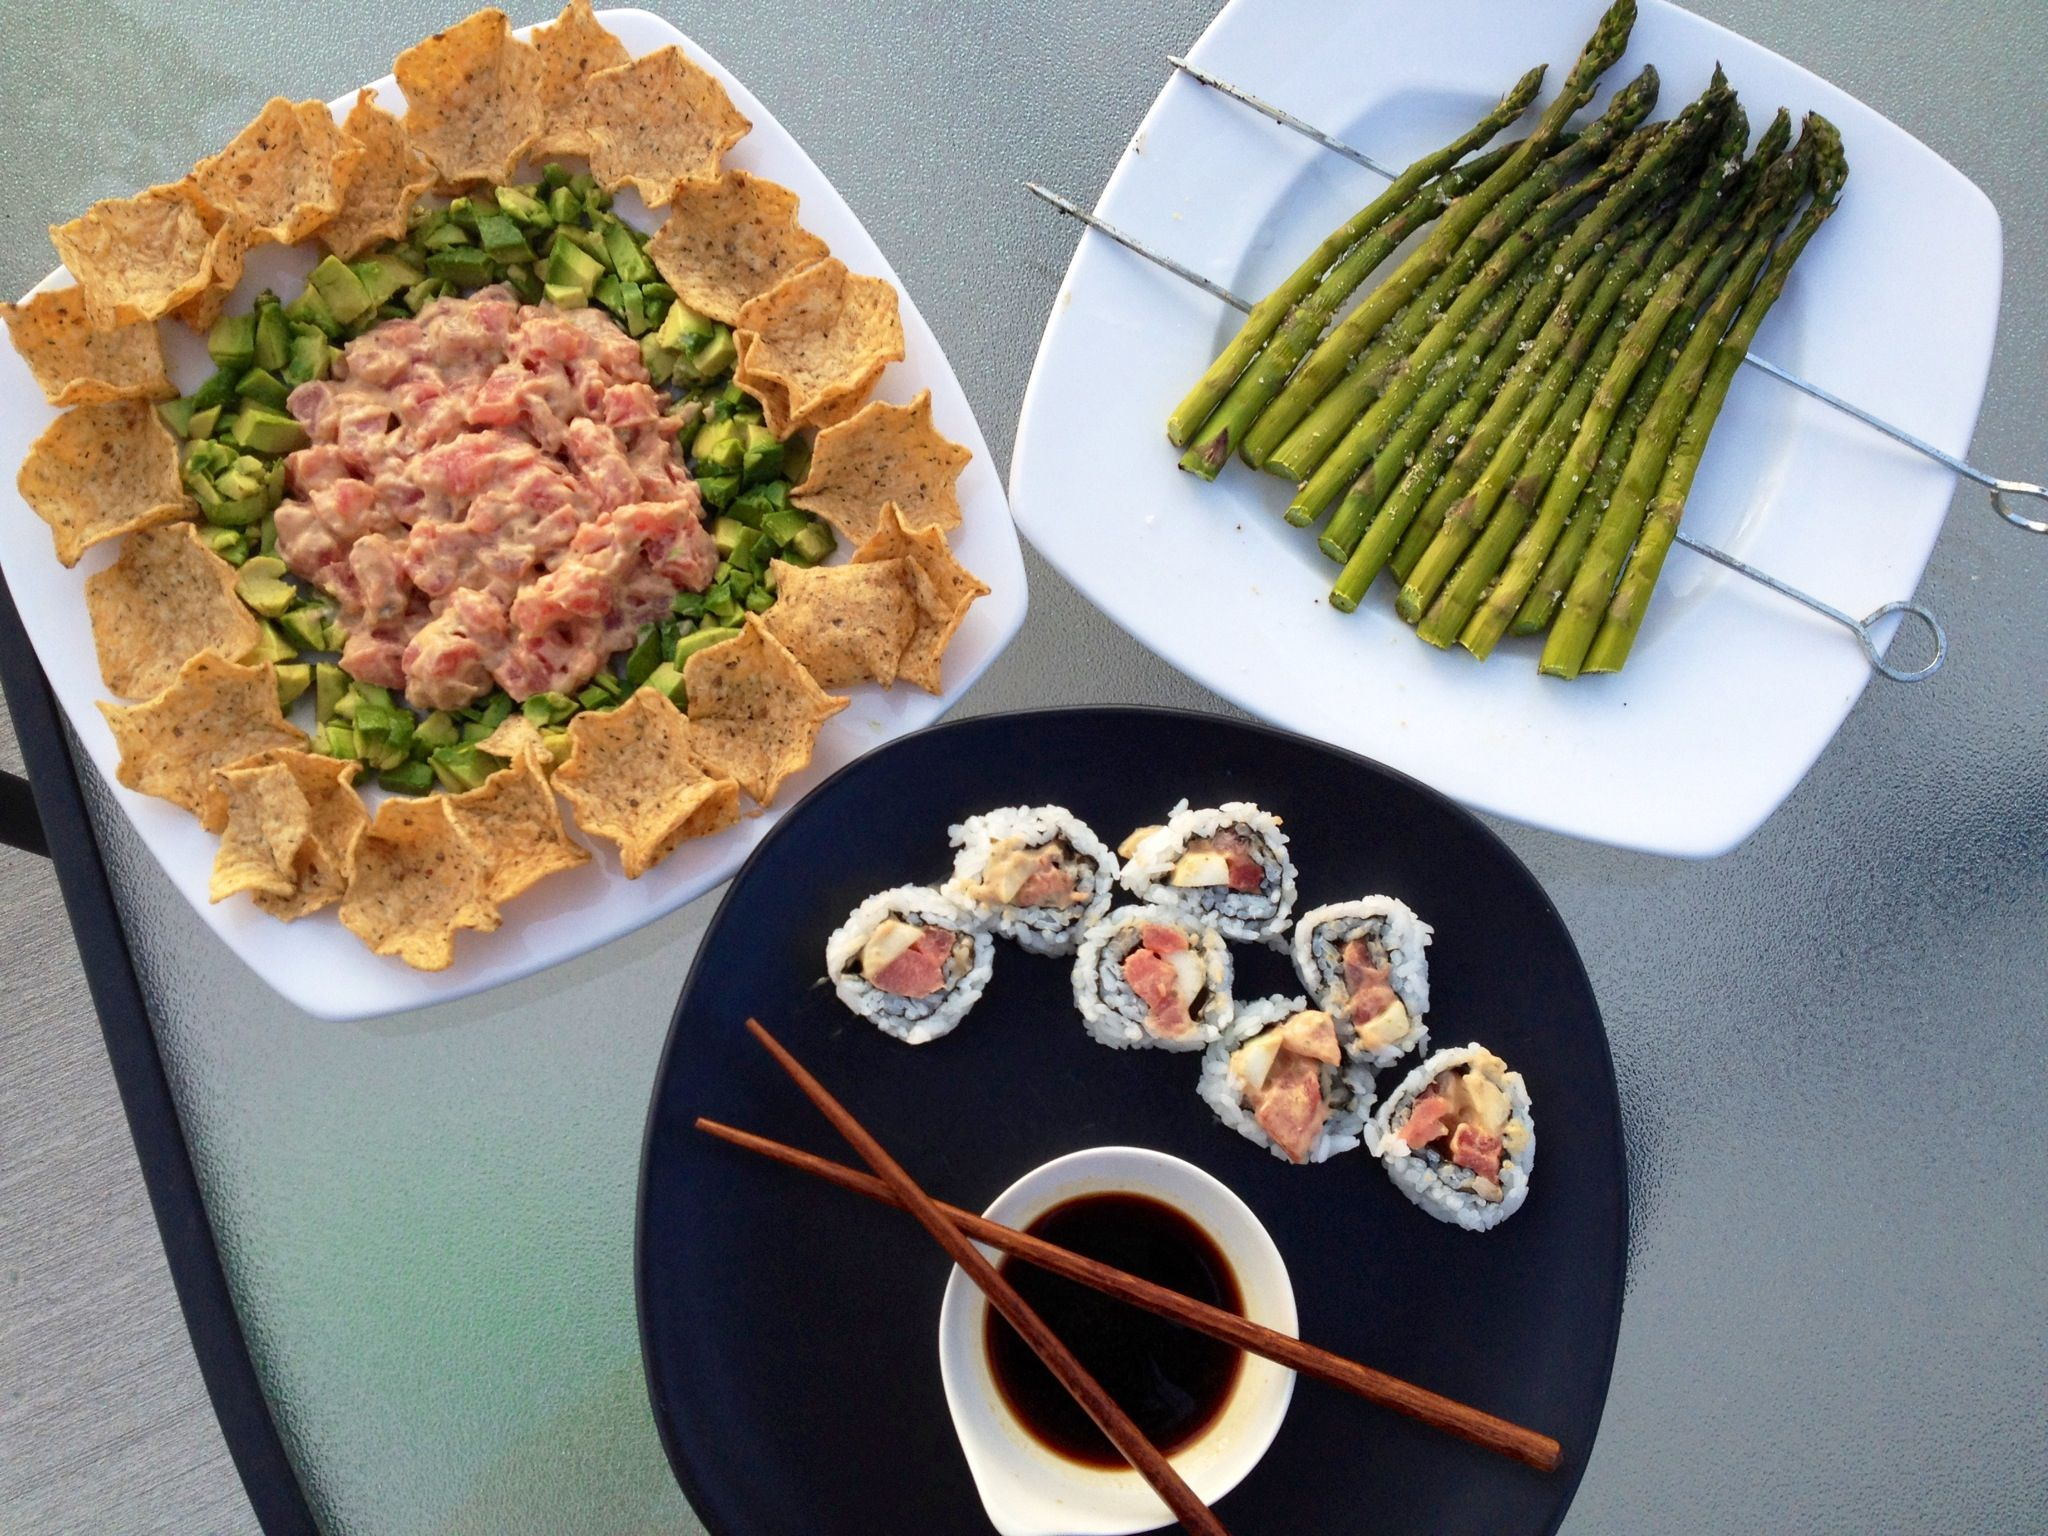 Homemade Tuna Tartar with Avocado, Grilled Asparagus and Spicy Tuna Cucumber Roll!